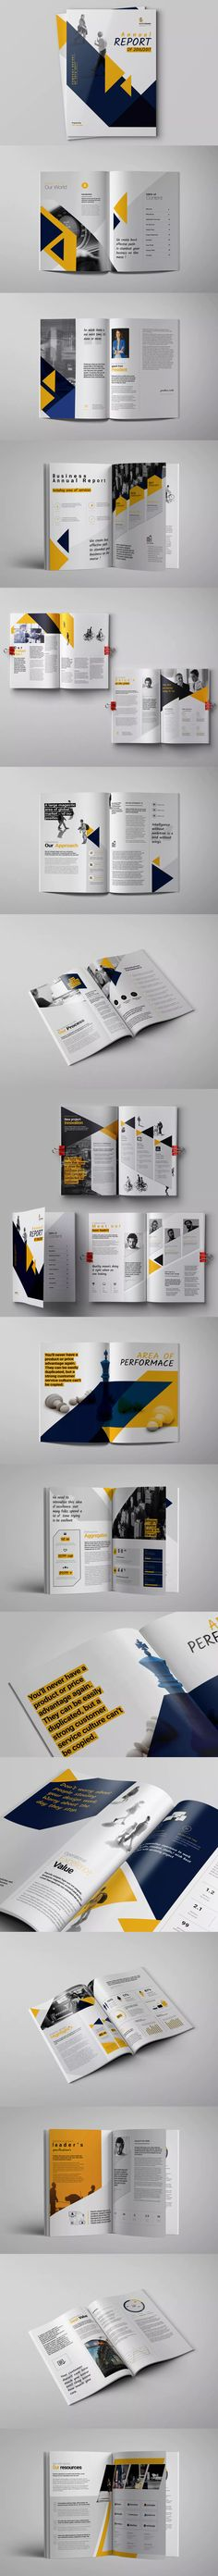 Annual Report Template InDesign INDD - A4 and US Letter Size #unlimiteddownloads